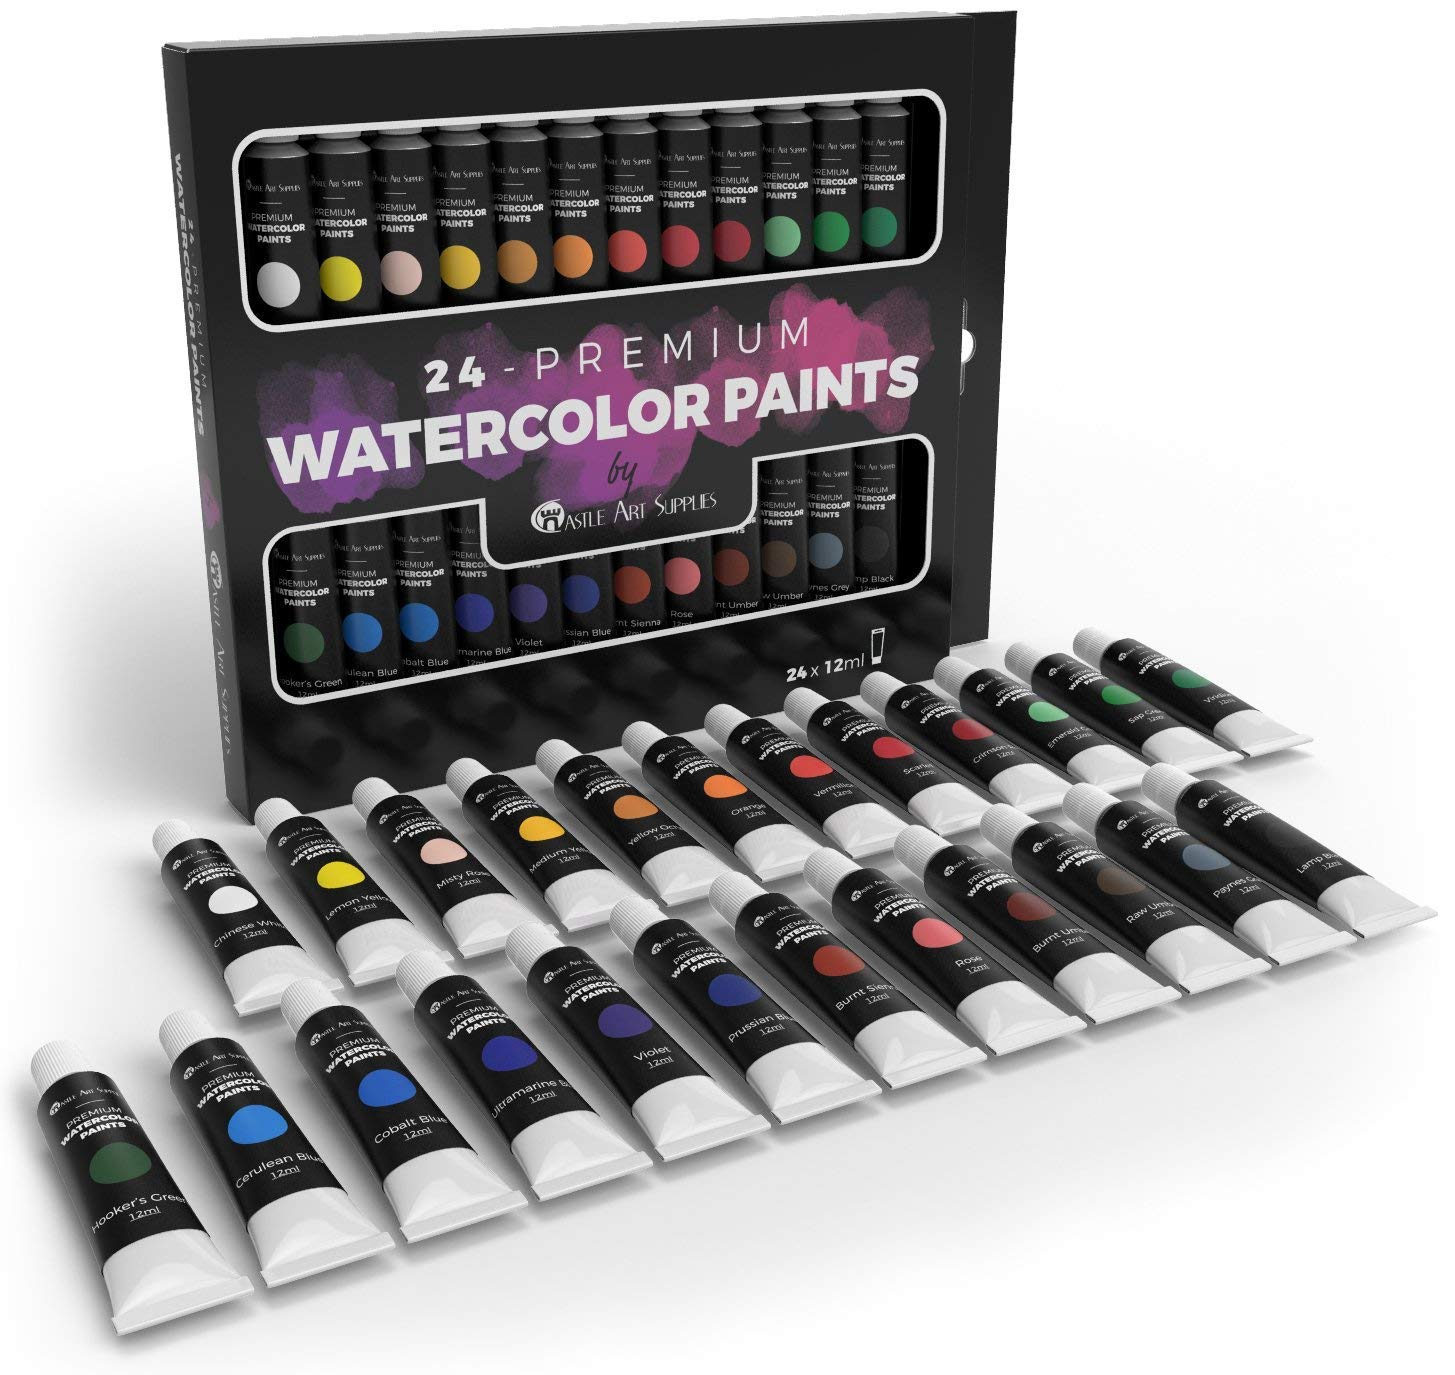 Castle Art Supplies Watercolors Paint Set - 24 Vibrant Colors in Tubes - Quality Paint That is Easy & Convenient to Mix with Great Results. This Set Makes it Super Easy to Enjoy Watercolors